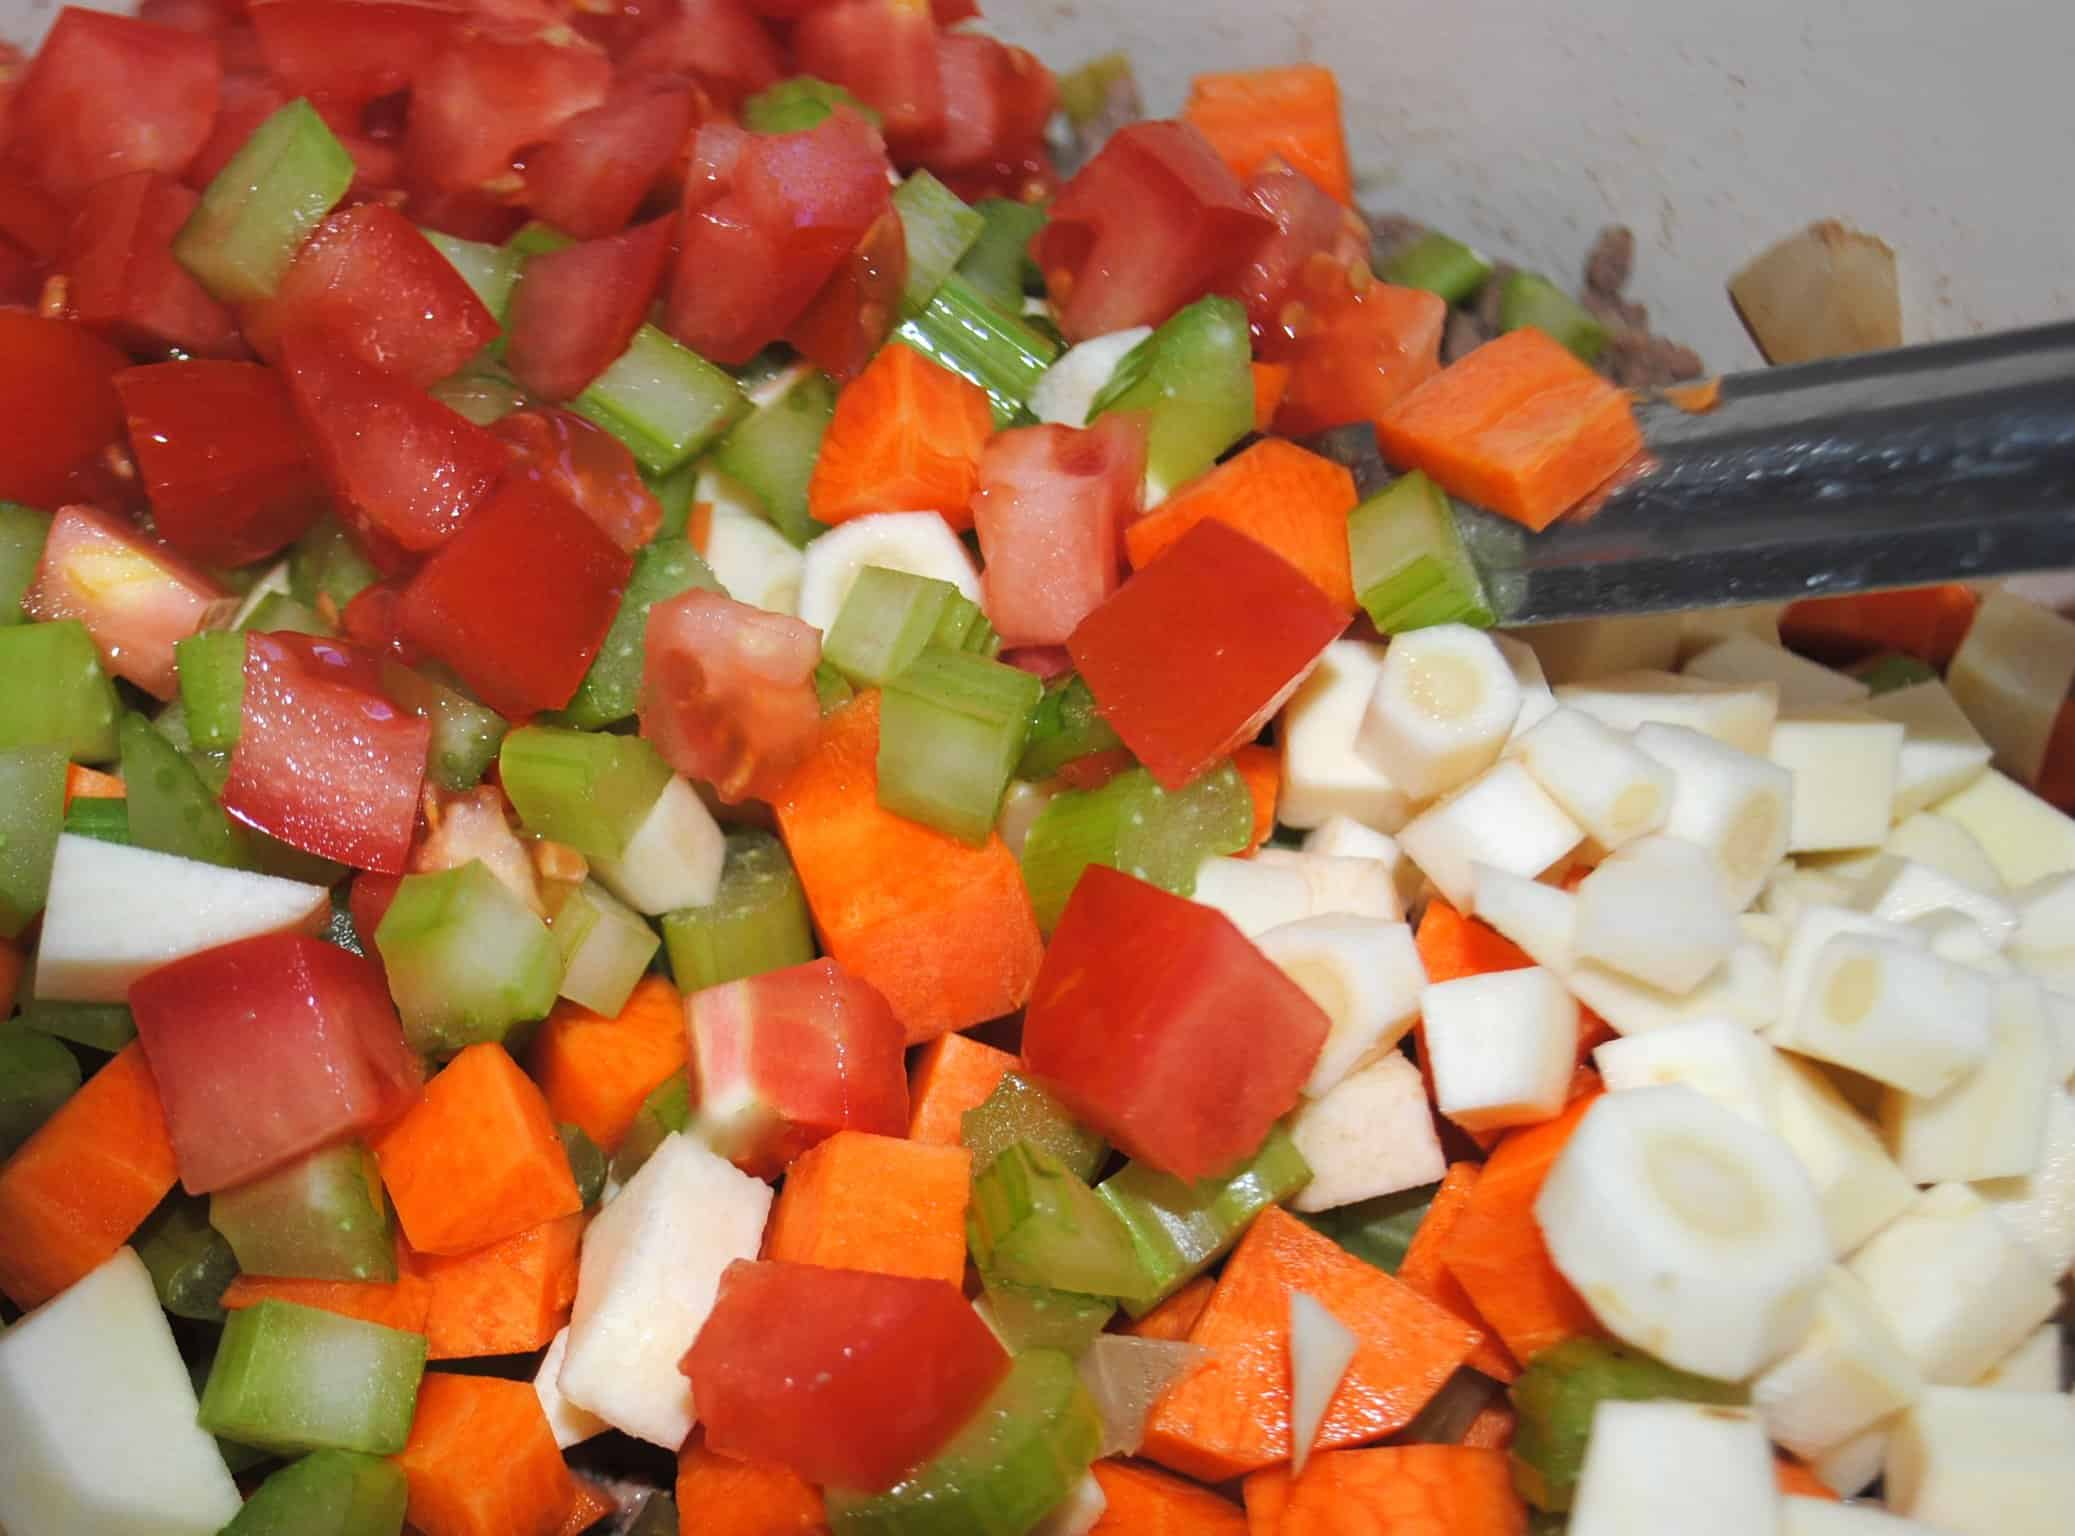 Shepherds pie - adding the vegetables